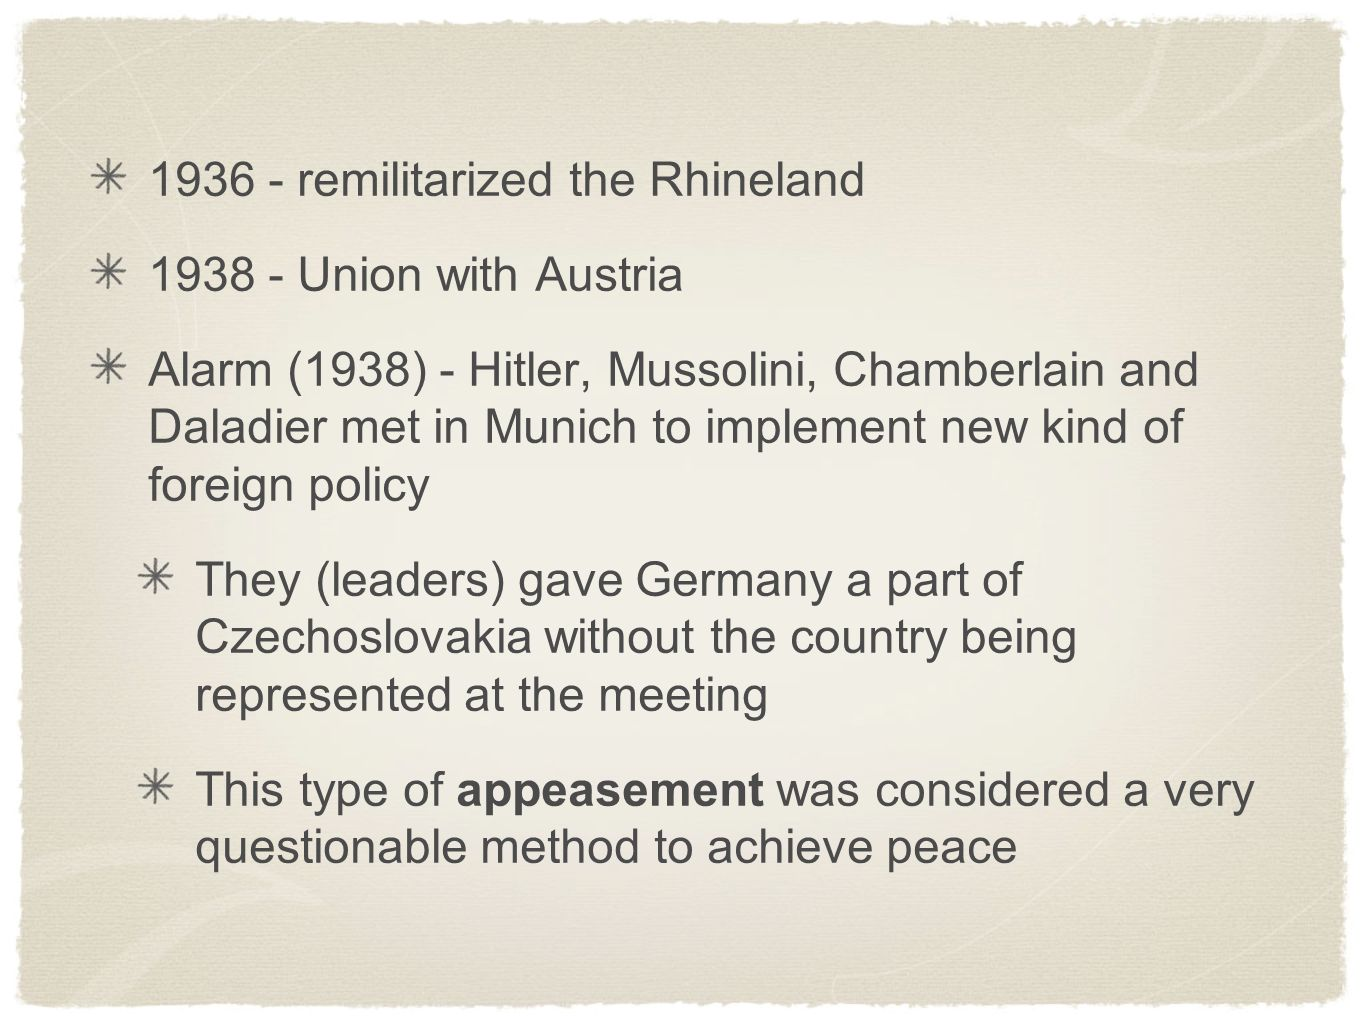 1936 - remilitarized the Rhineland 1938 - Union with Austria Alarm (1938) - Hitler, Mussolini, Chamberlain and Daladier met in Munich to implement new